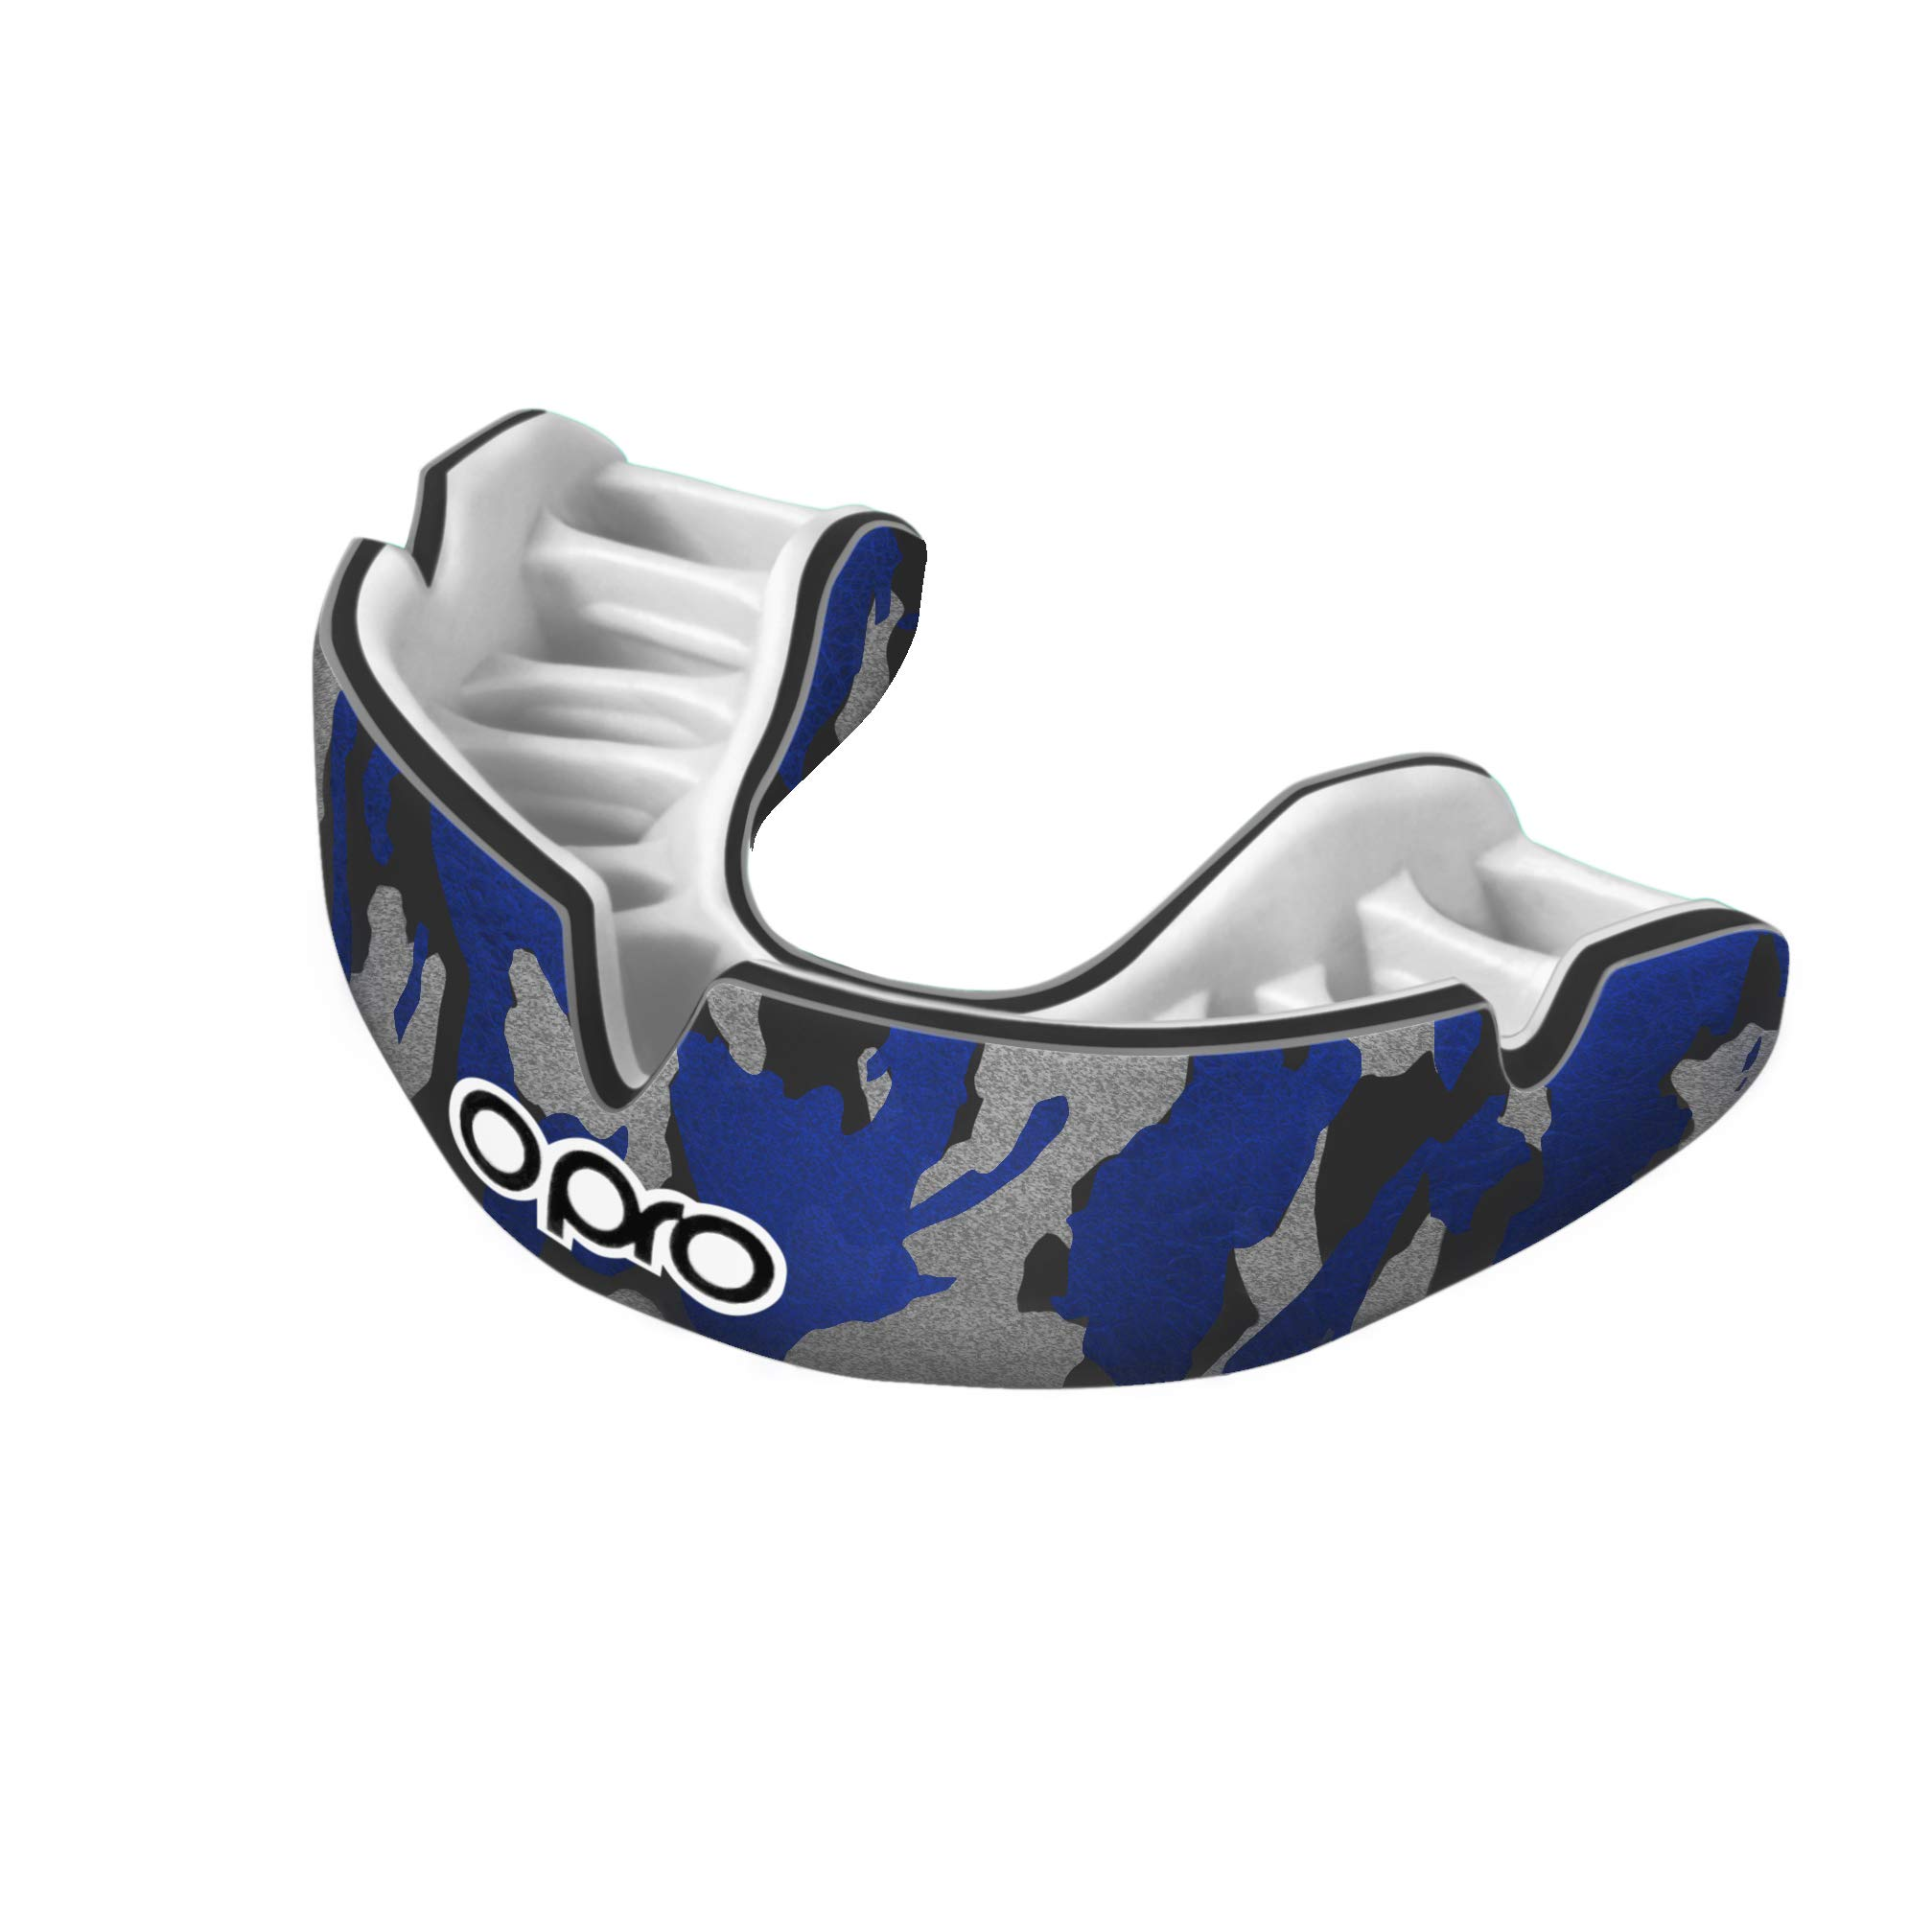 OPRO Power-Fit Mouthguard | Gum Shield for Rugby, Hockey, Wrestling, and Other Combat and Contact Sports (Adult and Junior Sizes) - 18 Month Dental Warranty (Camo - Black/Blue/Silver, Junior)